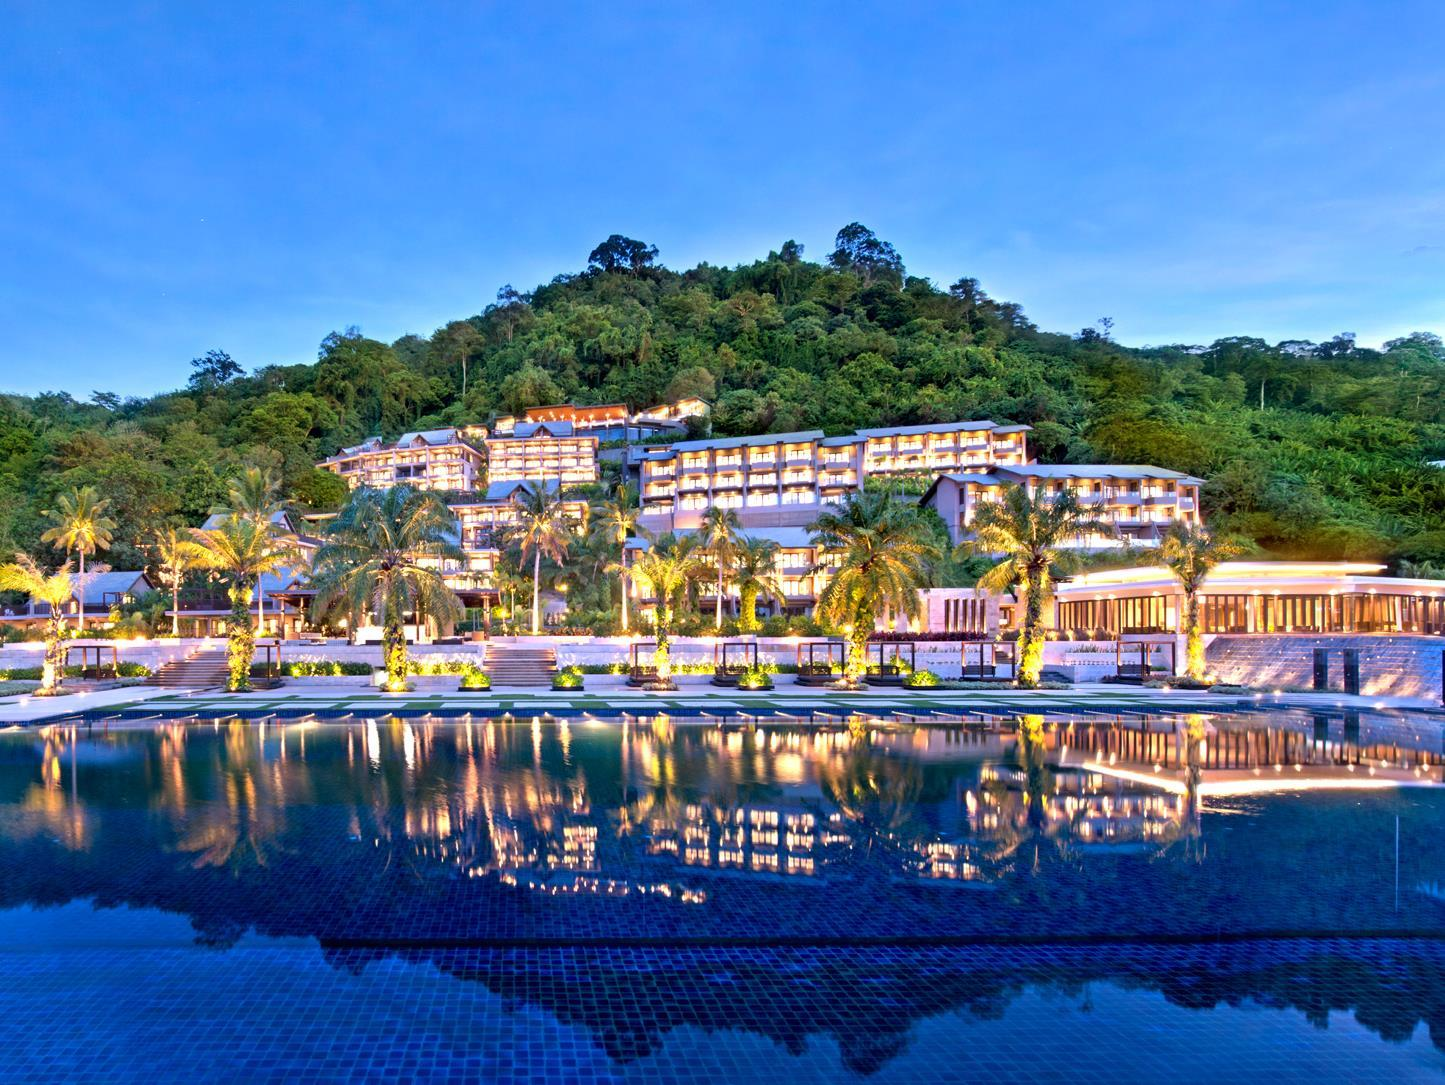 Hyatt Regency Phuket Resort - Phuket